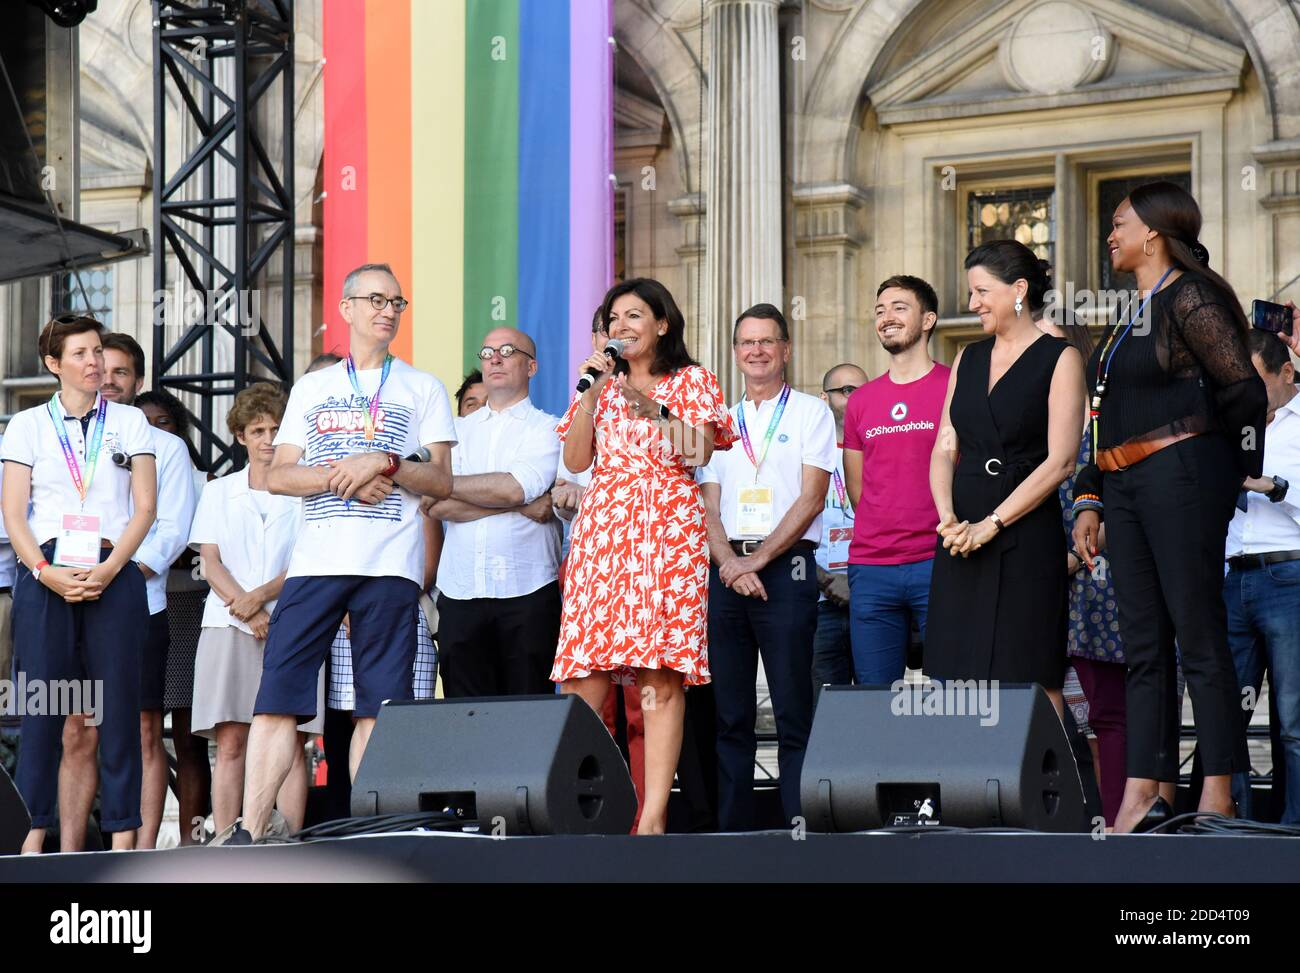 Paris' Mayor Anne Hidalgo, French Minister for Solidarity and Health Agnes Buzyn and French Sports Minister Laura Flessel during the inauguration of the sport village of the 2018 Gay Games' edition, on the Parvis de l'Hotel de Ville, in Paris, on August 4, 2018, on the sidelines of the opening of the Gay Games. French capital, Paris, hosts the Gay Games from August 4, 2018 to August 12, 2018 bringing together participants from around the world for a week of sport and culture in a carnival atmosphere. Six years before hosting the 2024 Olympic Games, Paris will welcome more than 10,000 participa Stock Photo